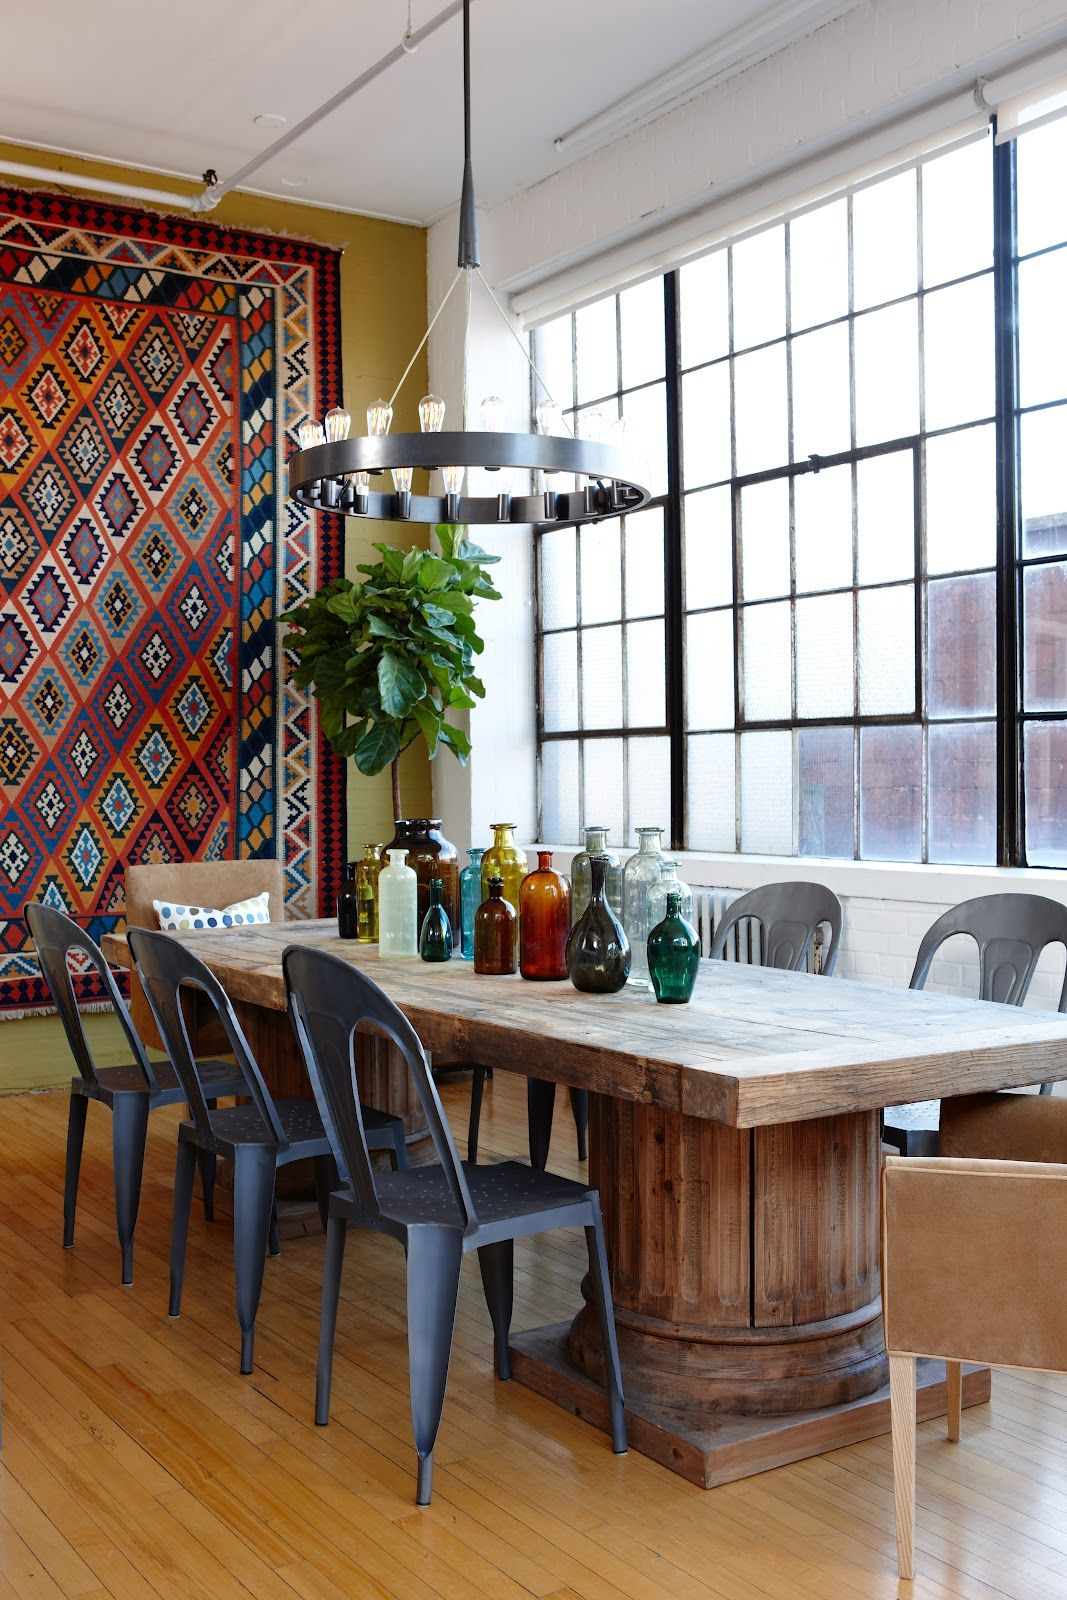 dining room efficient and rustic boho look my style for the home pinterest room urban on boho chic decor living room bohemian kitchen id=64536